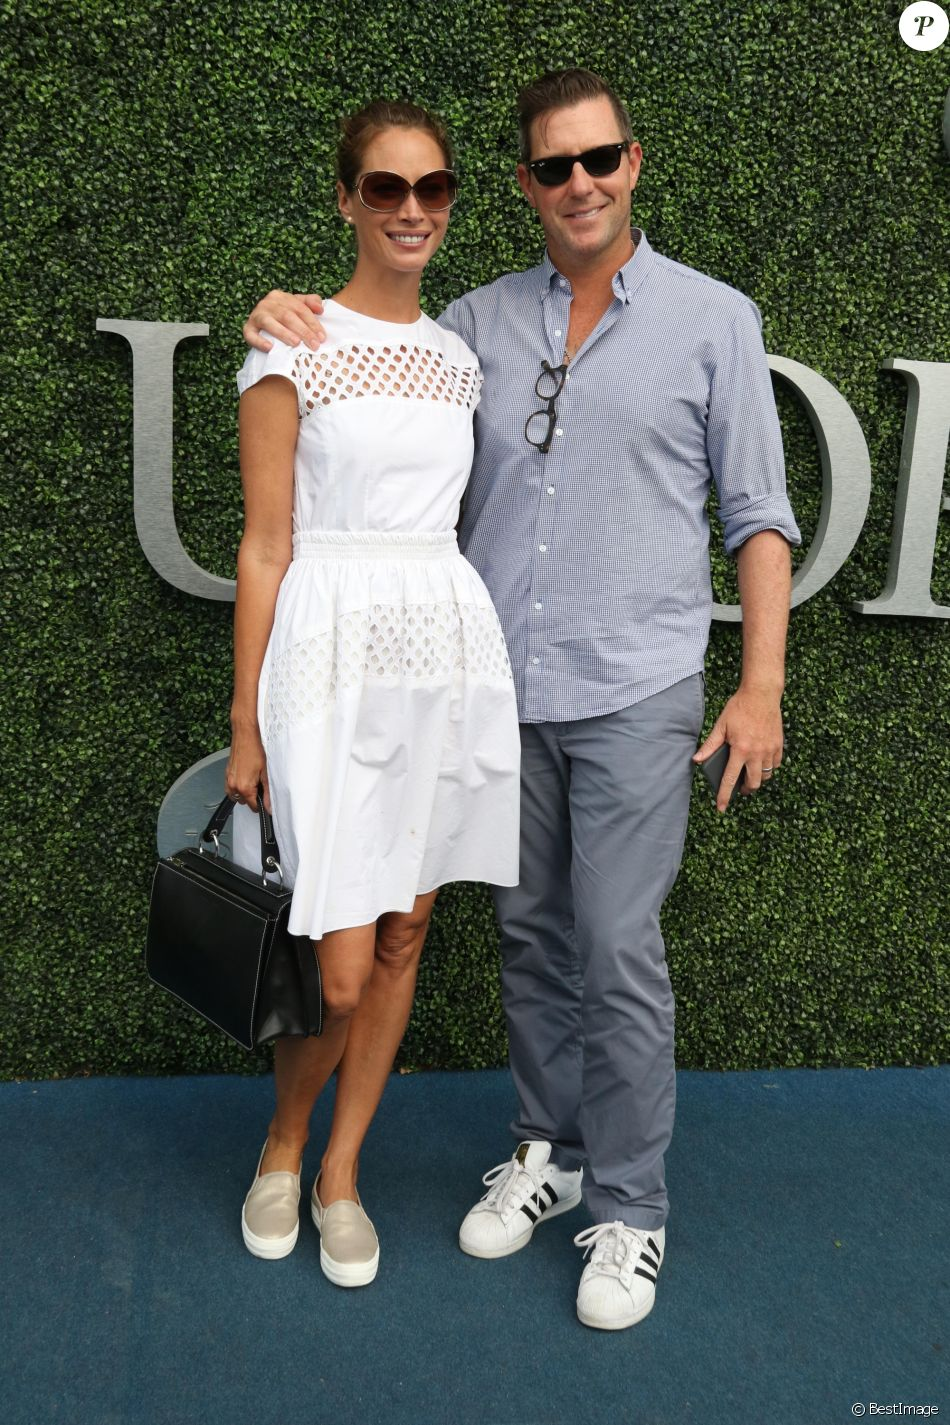 Christy Turlington et son mari Ed Burns à l'US Open 2016 au USTA Billie Jean King National Tennis Center à Flushing Meadows, New York City, New York, le 10 septembre 2016. © John Barrett/Globe Photos/Zuma Press/Bestimage